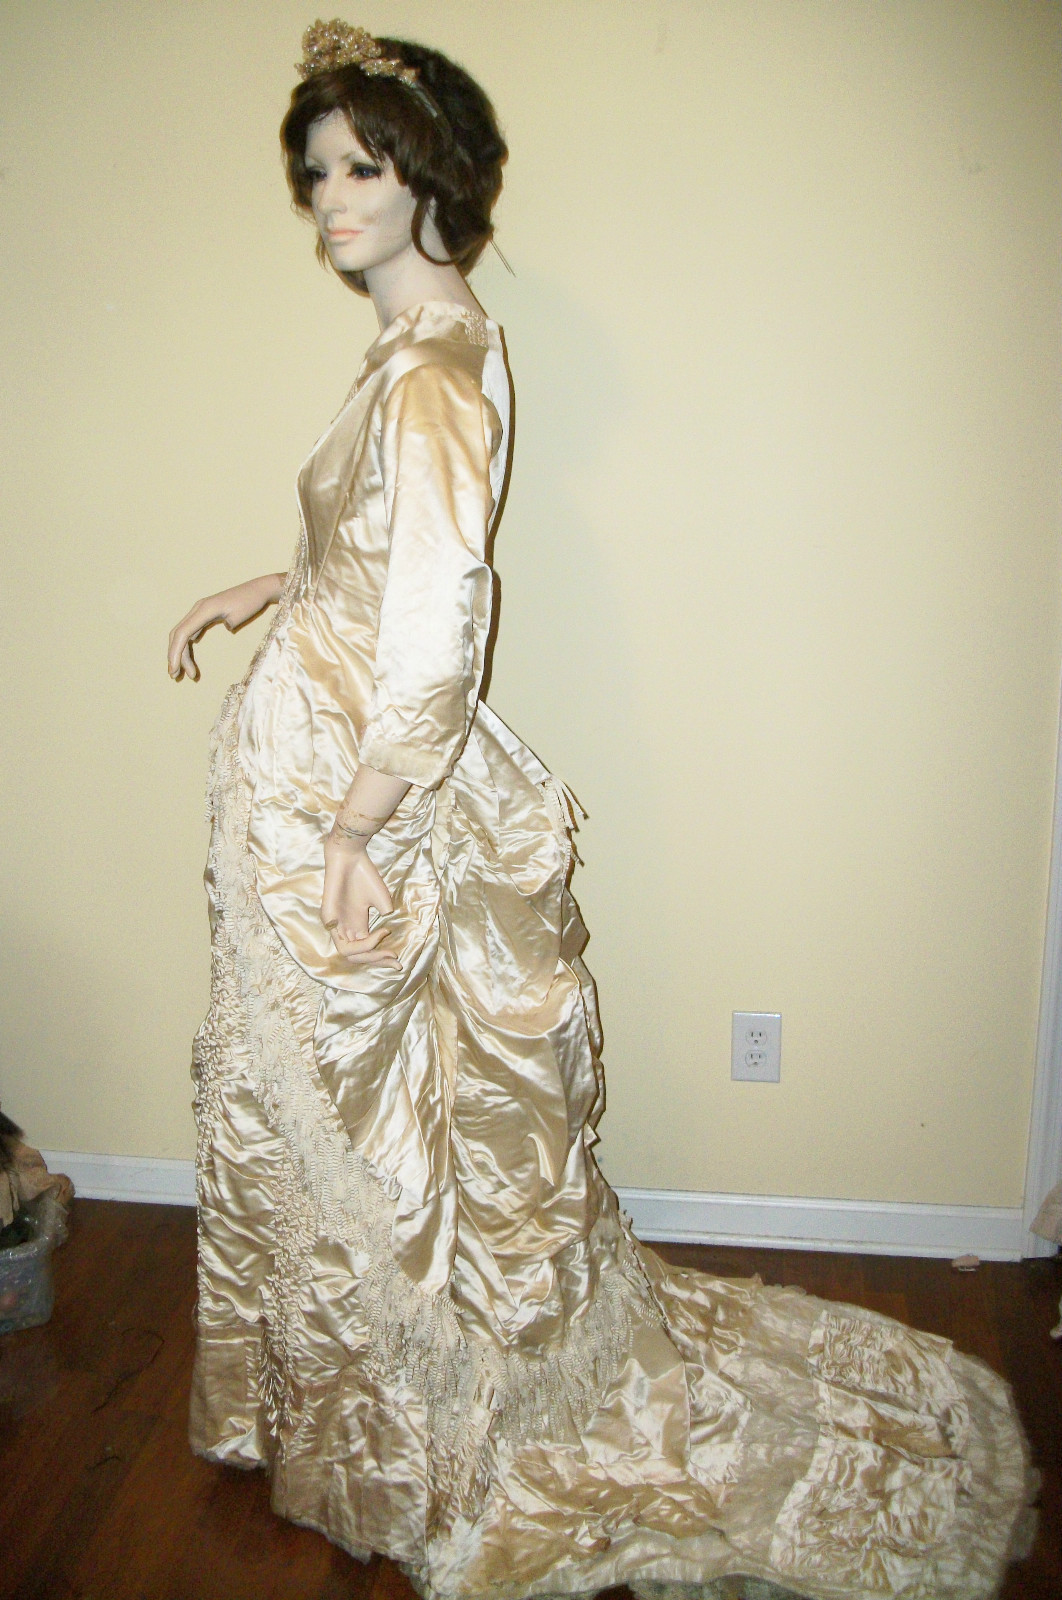 All The Pretty Dresses: Bustle Era Wedding (?) Gown